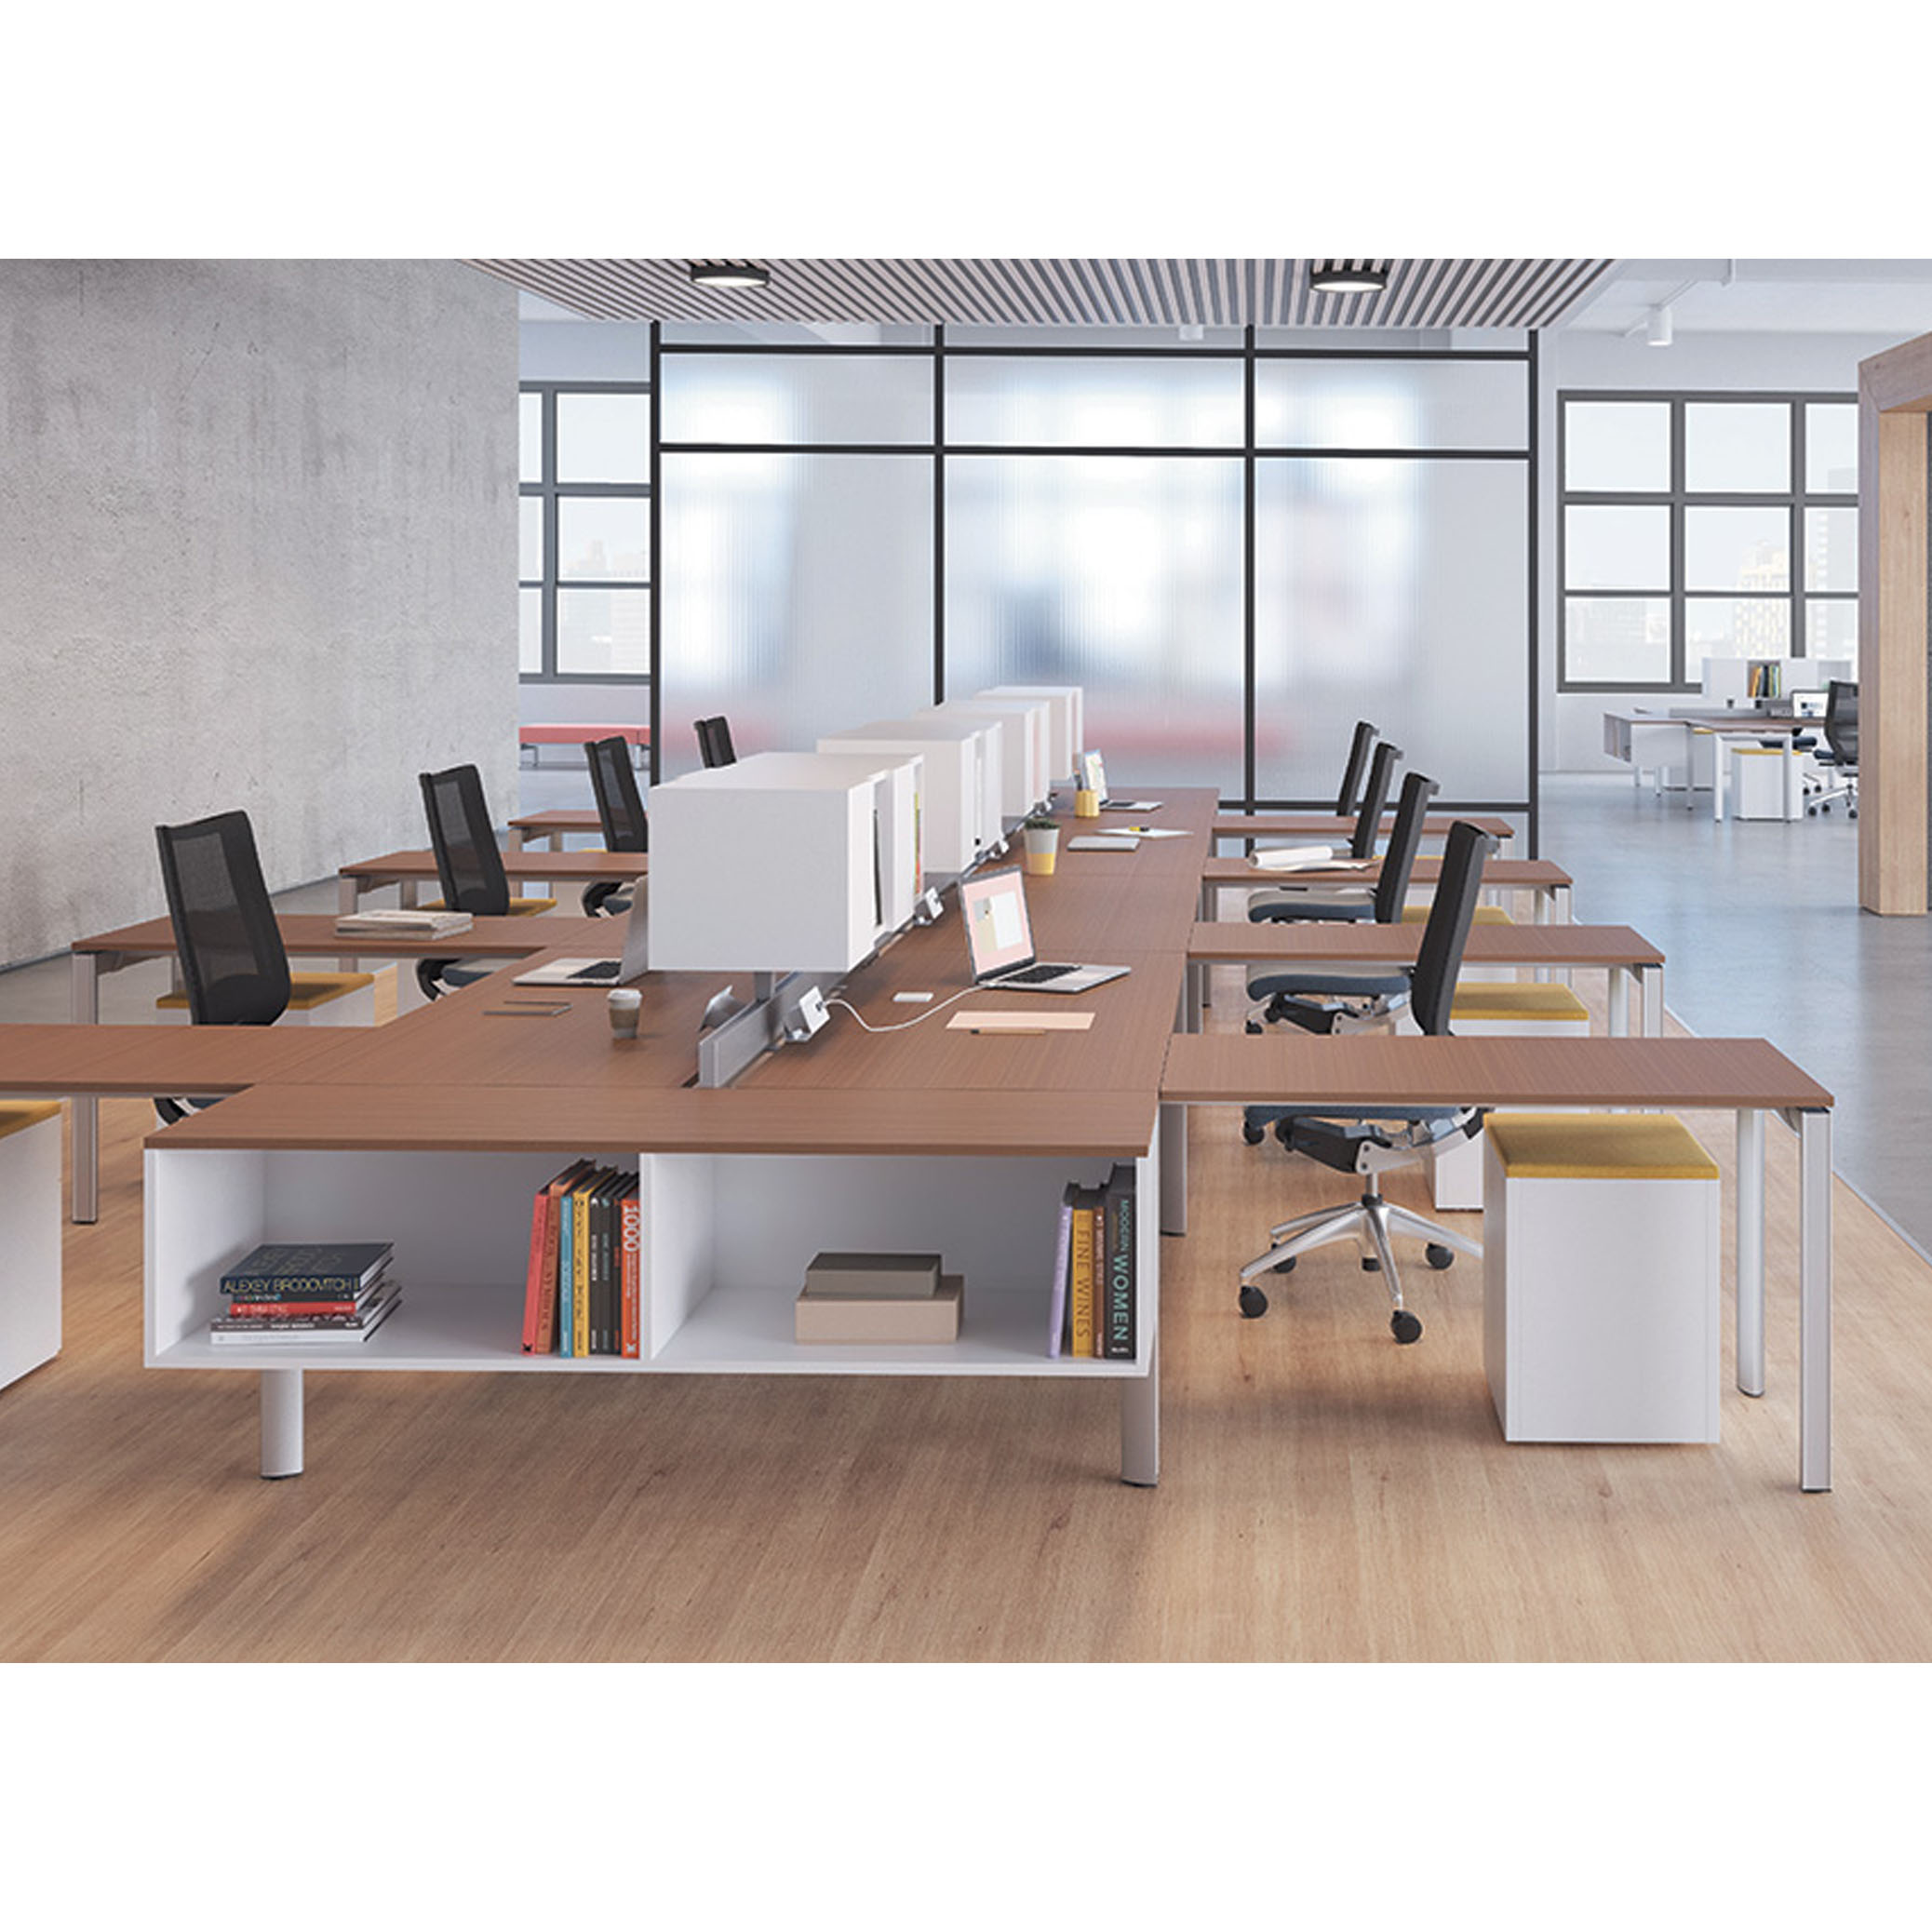 Rent Office Furniture Office Furniture For Rent Awesome